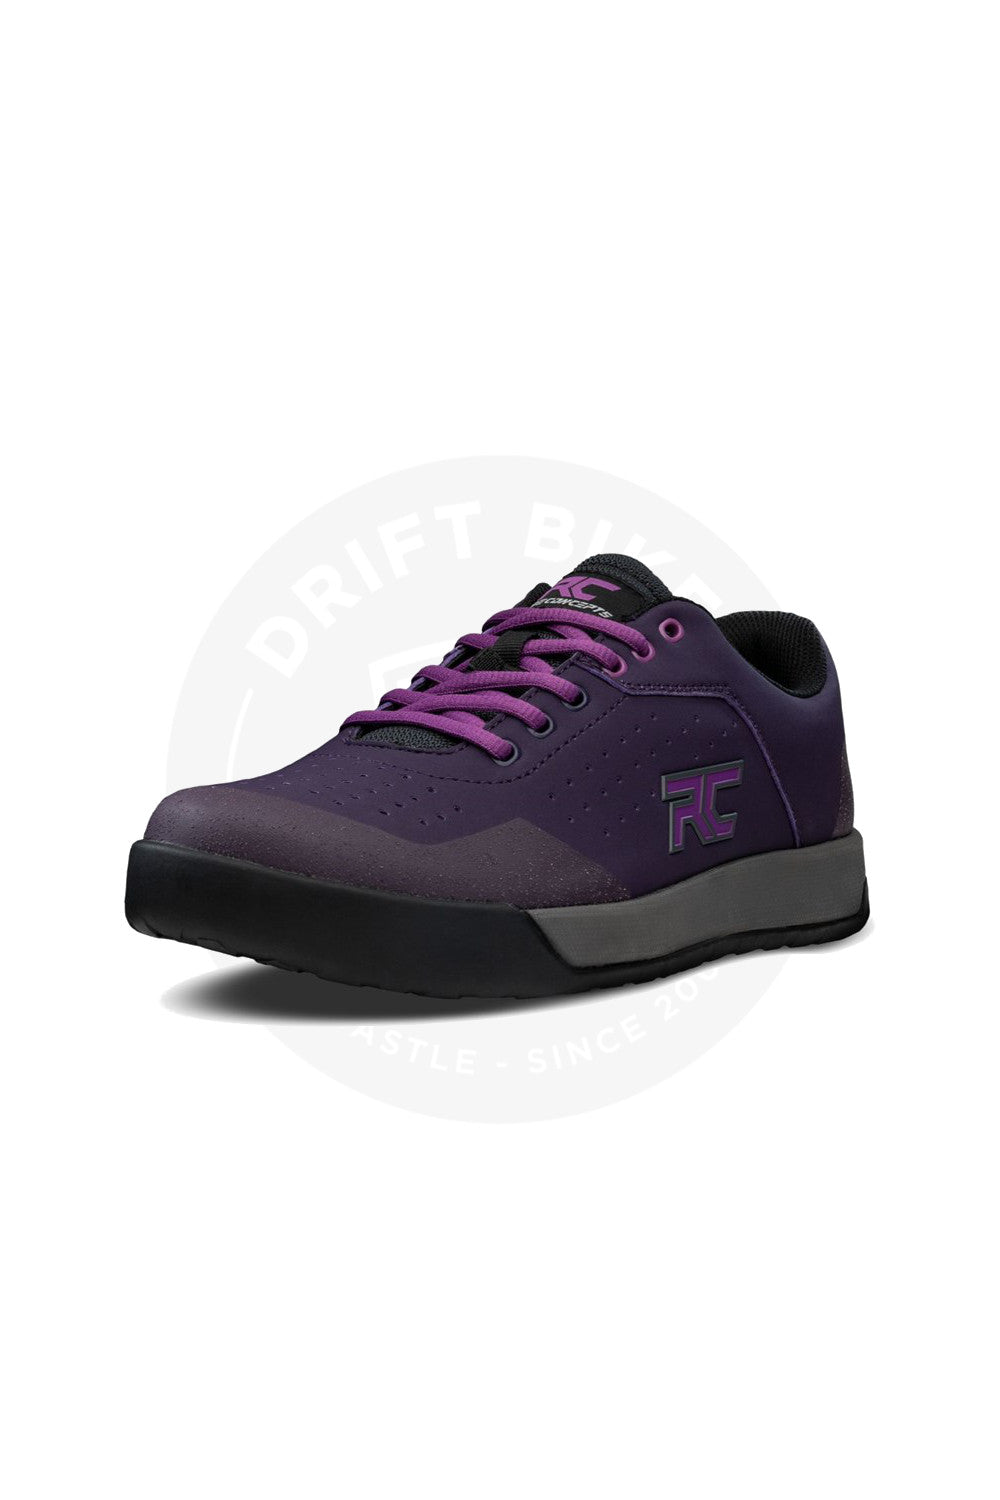 Ride Concepts Hellion Women's Flat Bike Shoe